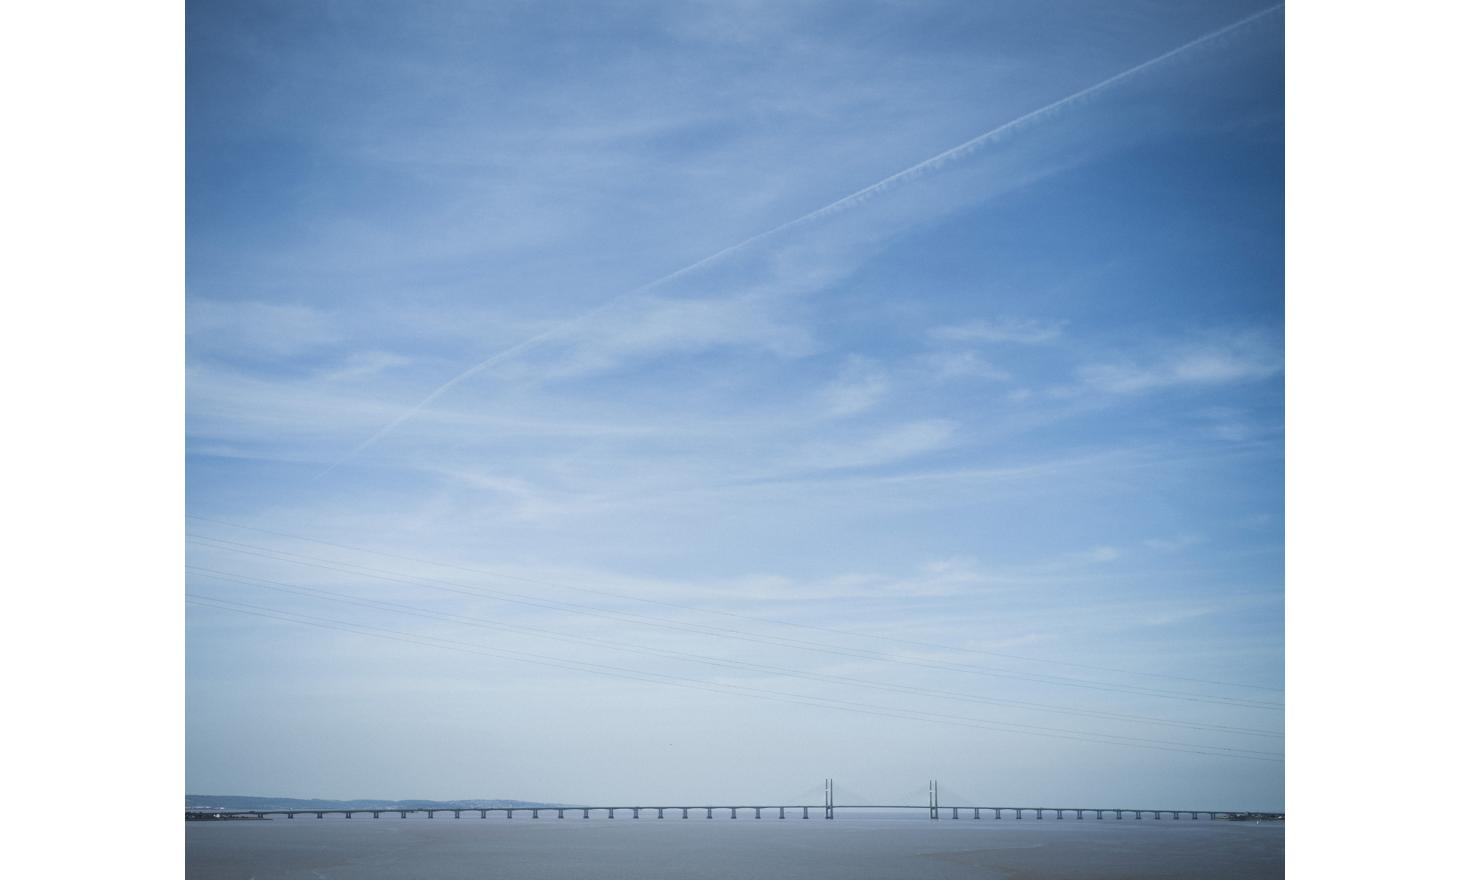 The Bristol channel, that separates England from Wales, seen from the motorway.